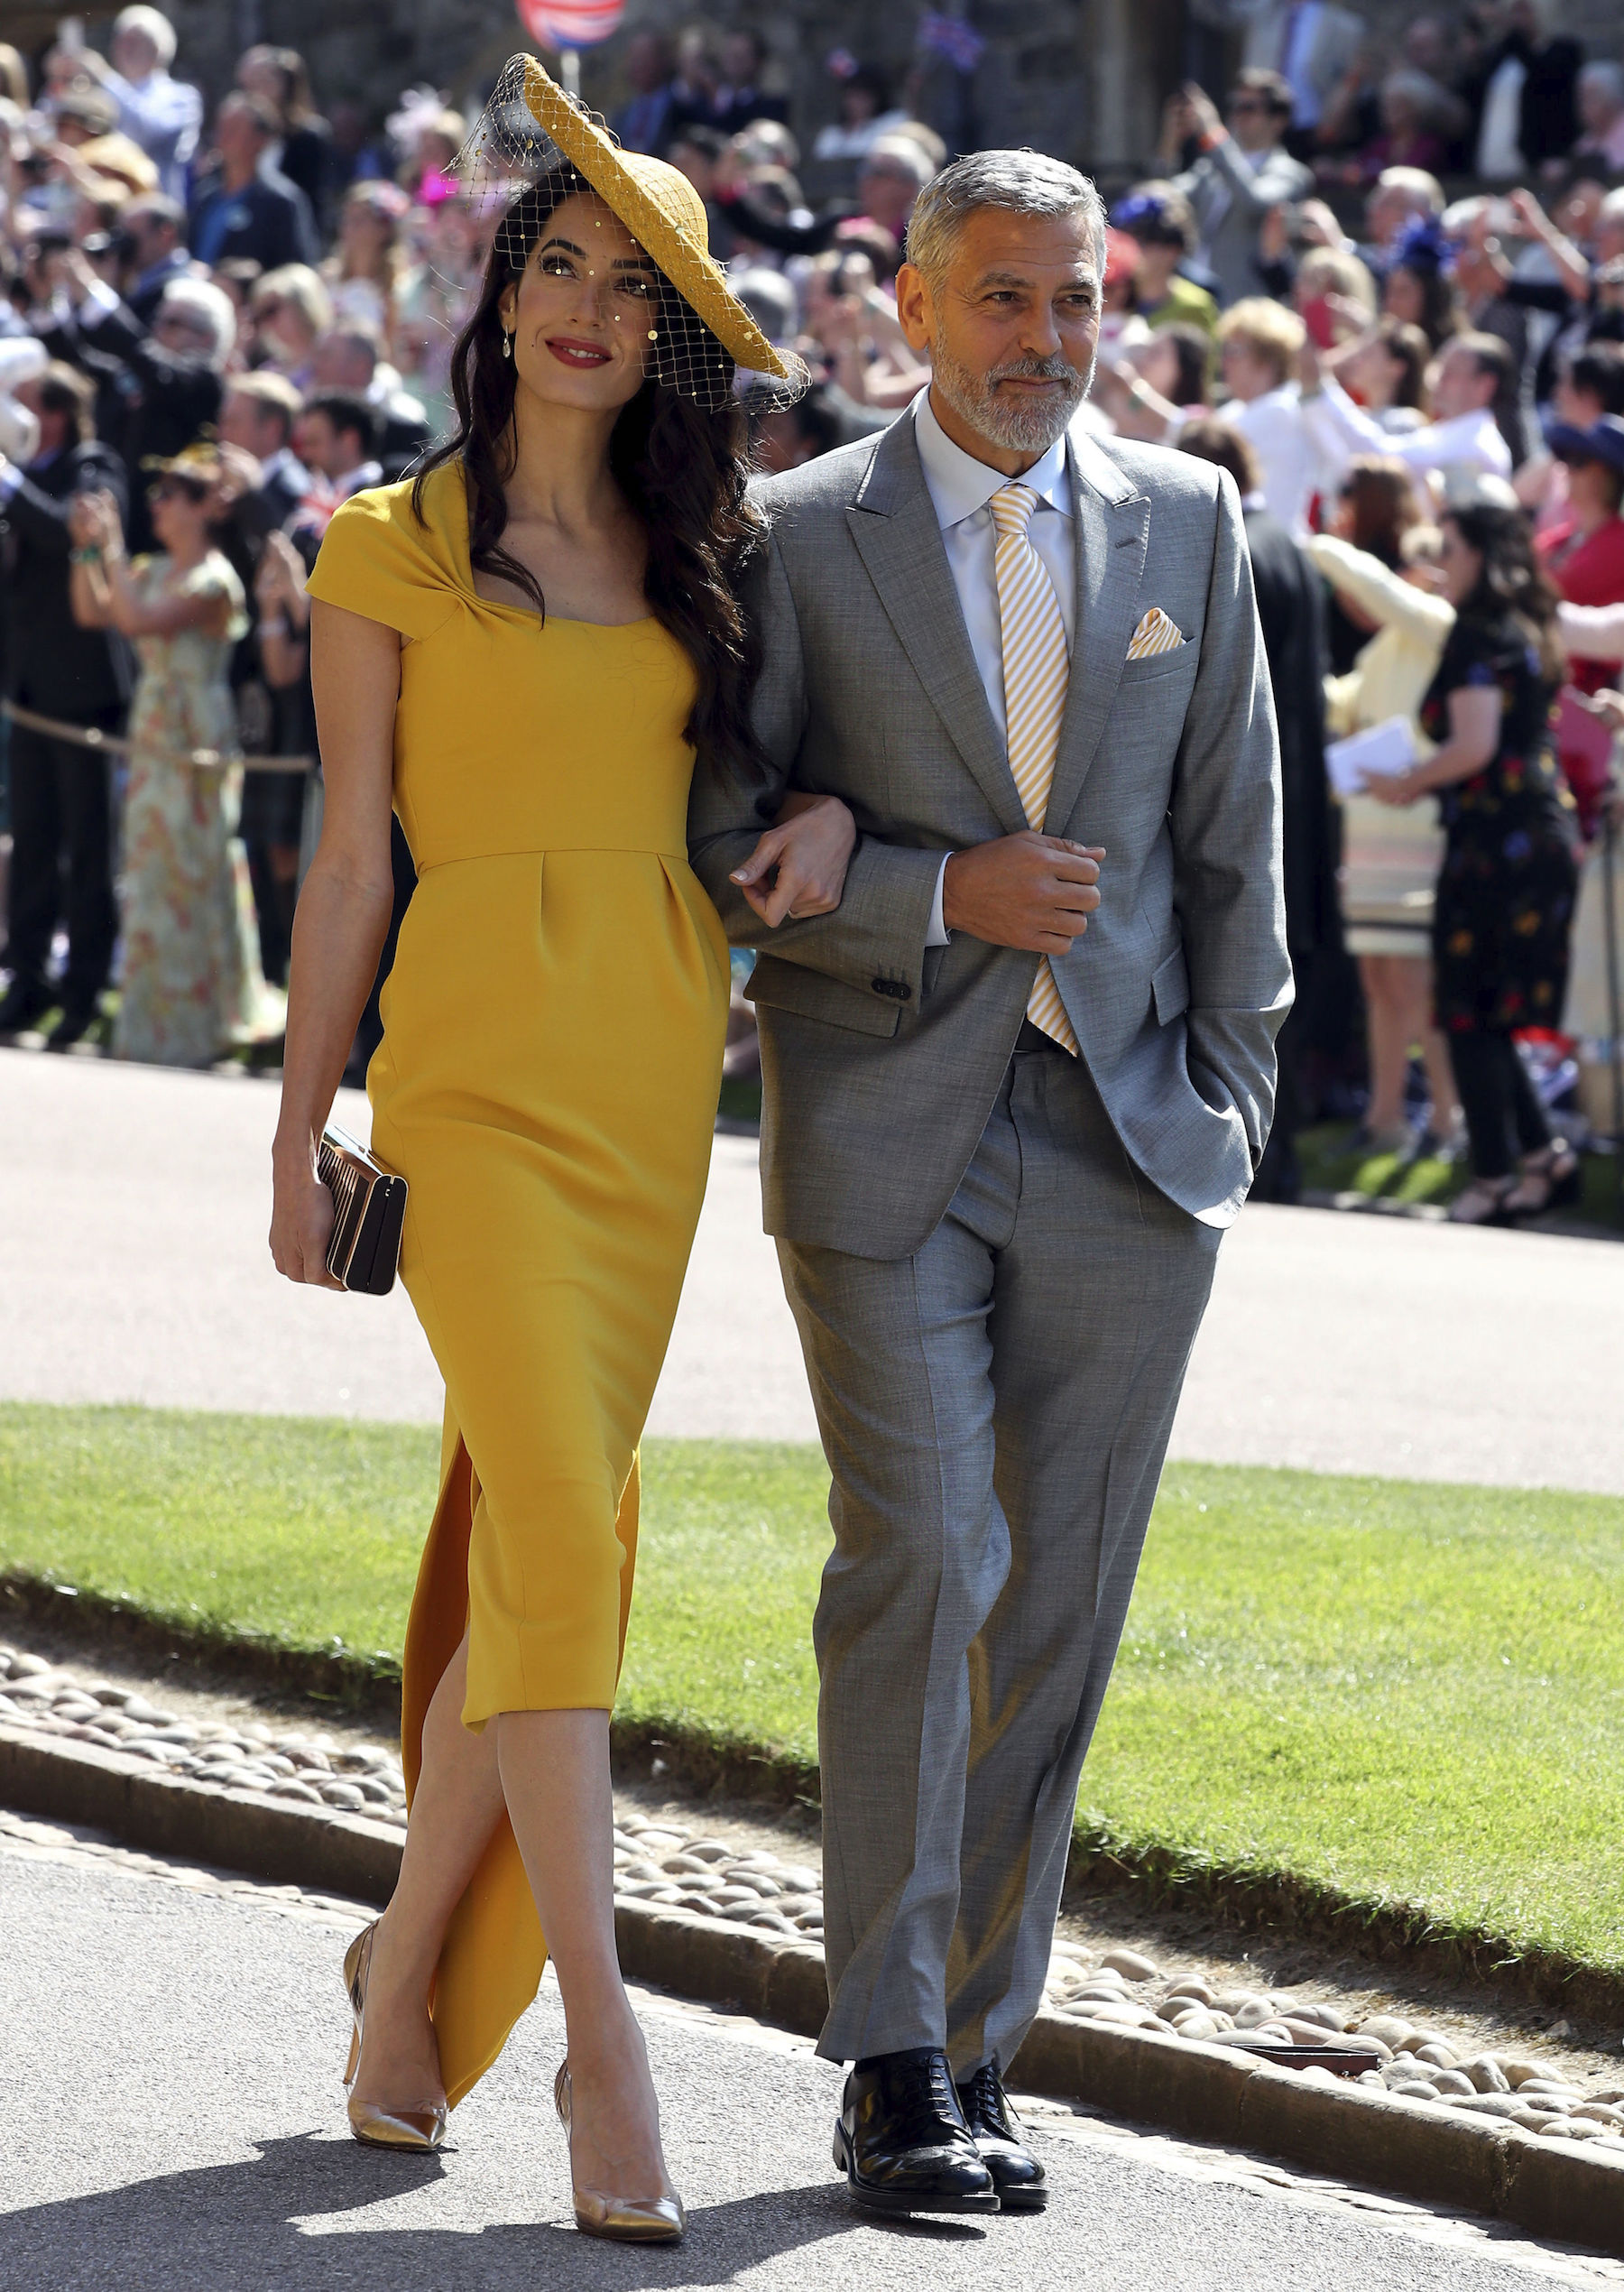 <div class='meta'><div class='origin-logo' data-origin='AP'></div><span class='caption-text' data-credit='Chris Radburn/PA Wire'>George and Amal Clooney arrive at St George's Chapel at Windsor Castle for the wedding of Meghan Markle and Prince Harry.</span></div>